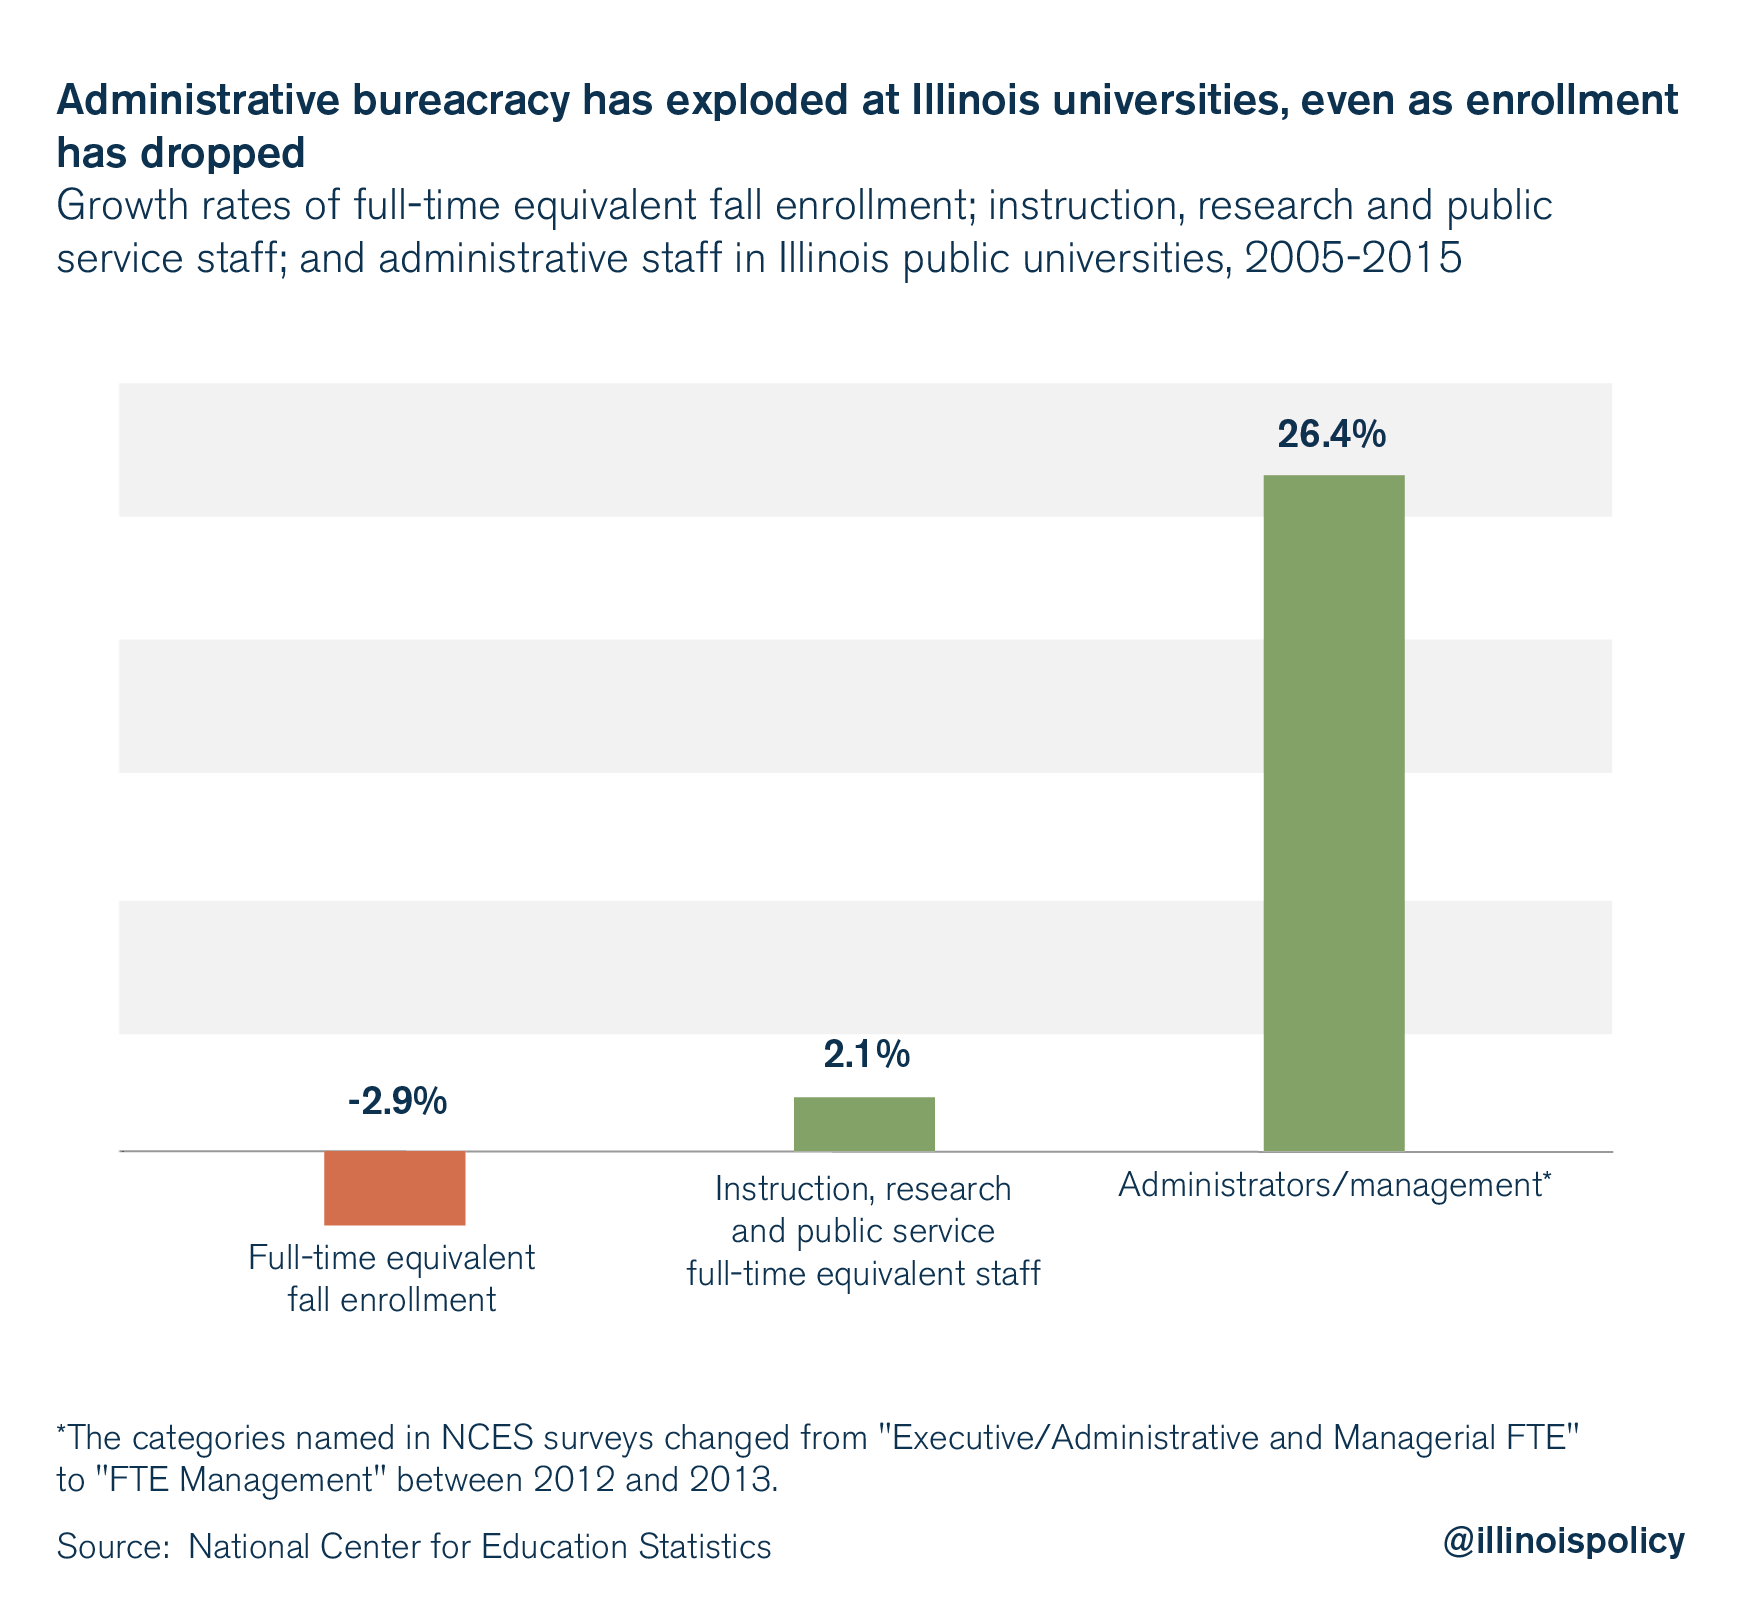 Administrative bureacracy has exploded at Illinois universities, even as enrollment shrinks.